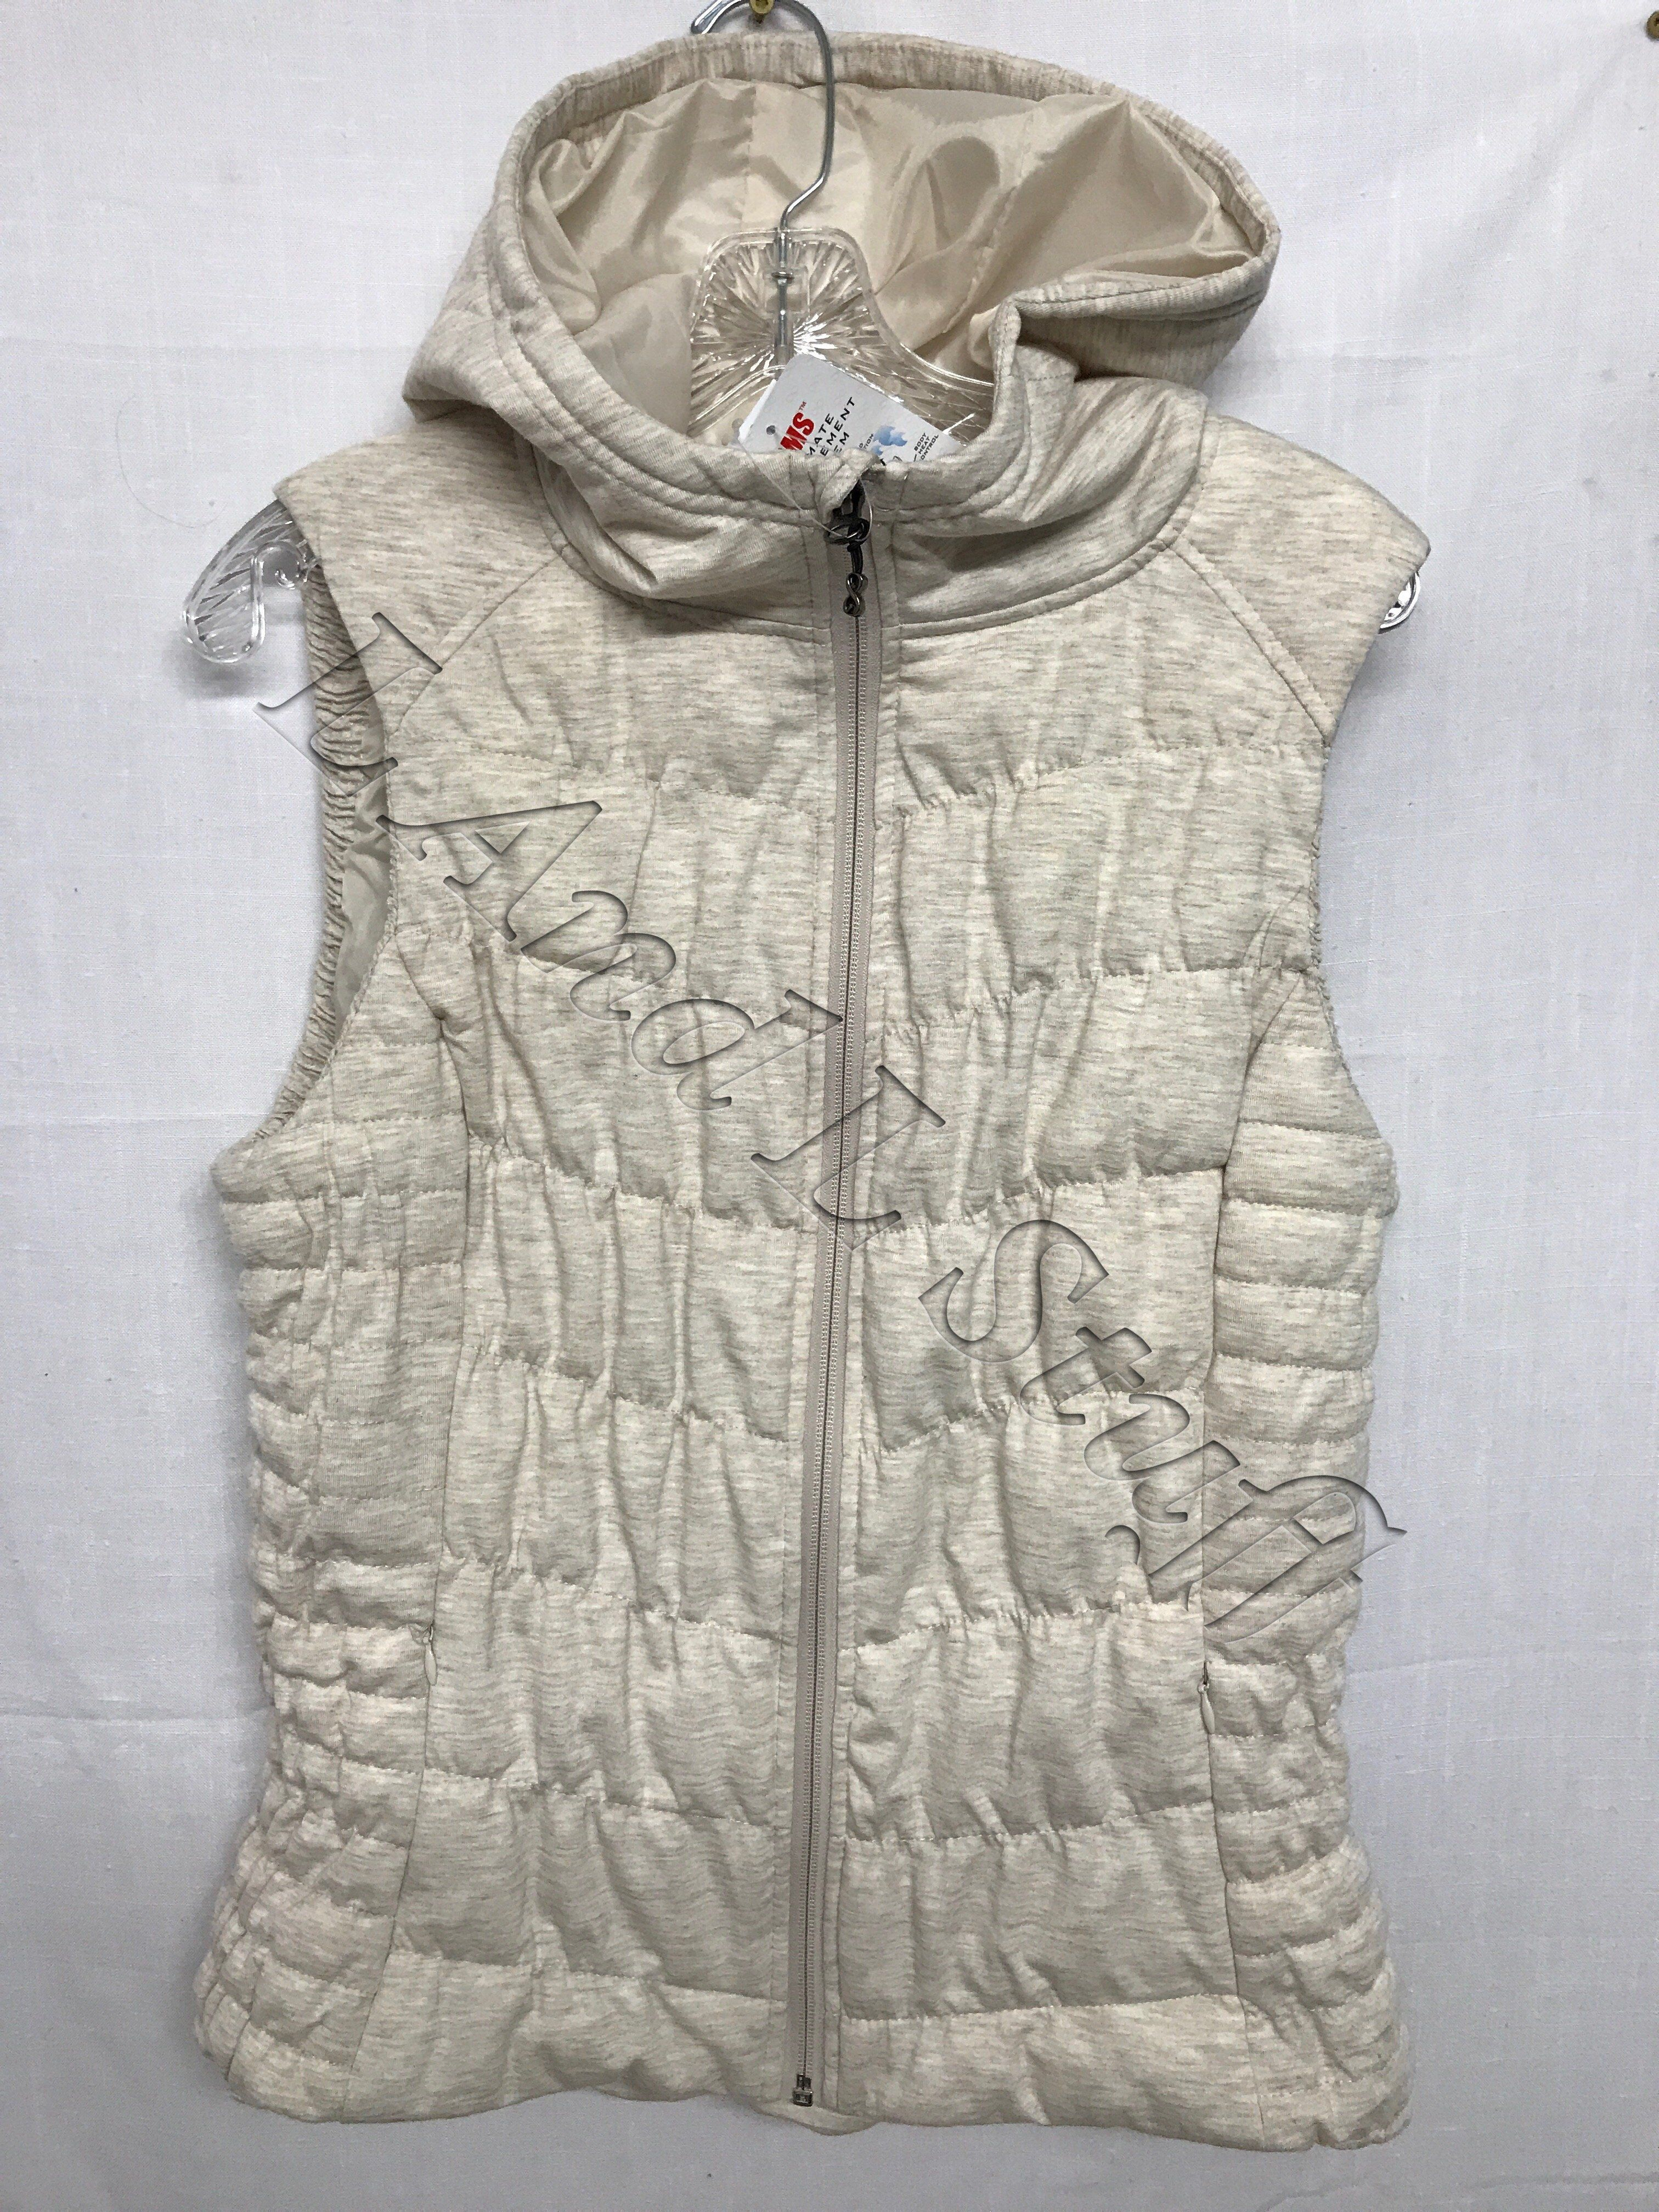 oat quilt u outerwear coats puffer smooth fabricated from polo assn c p vest women quilted womens s polyester eckwgha clothing